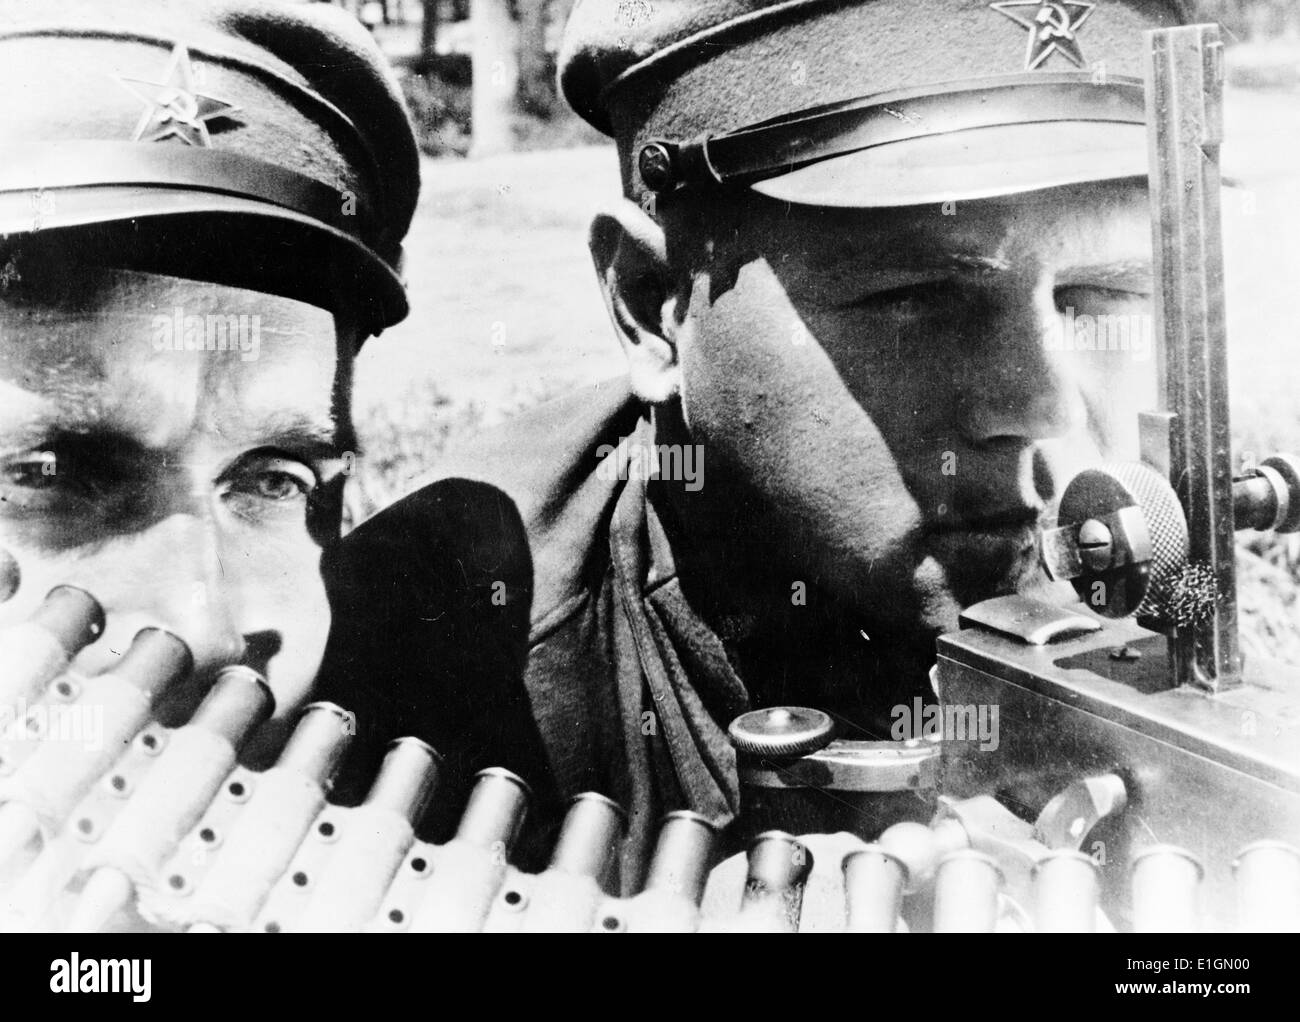 Photograph of Machine gunners of the far eastern Red Army in the USSR (Union of Soviet Socialist Republics) - Stock Image